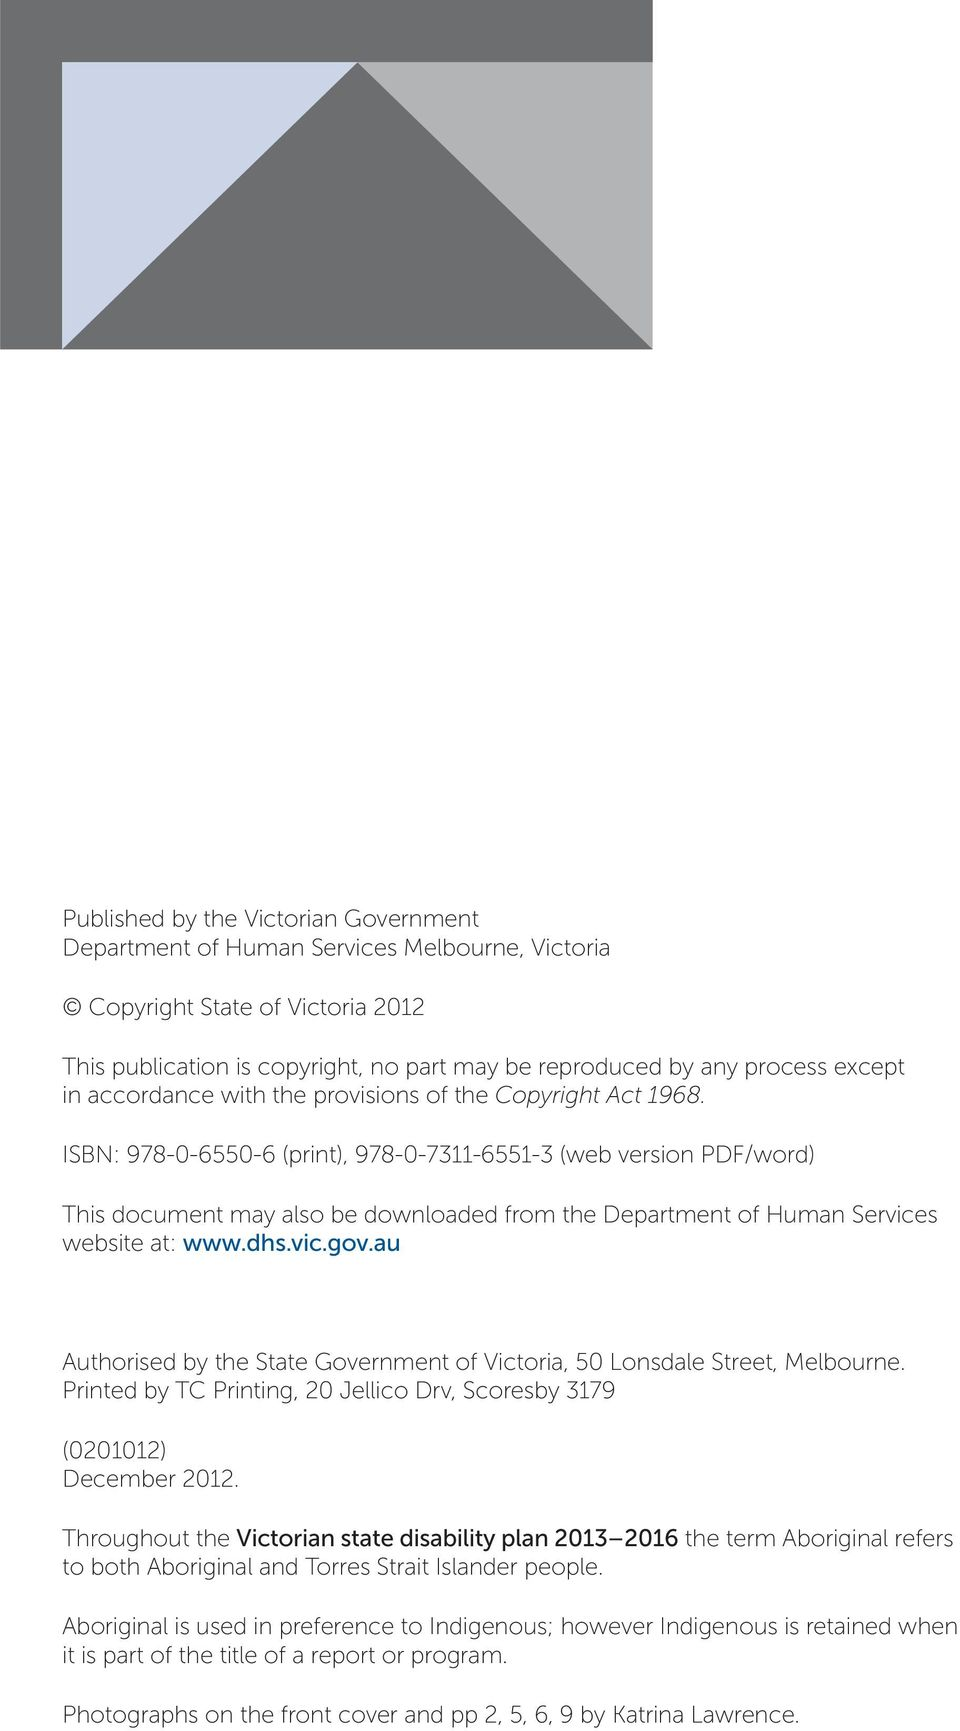 ISBN: 978-0-6550-6 (print), 978-0-7311-6551-3 (web version PDF/word) This document may also be downloaded from the Department of Human Services website at: www.dhs.vic.gov.